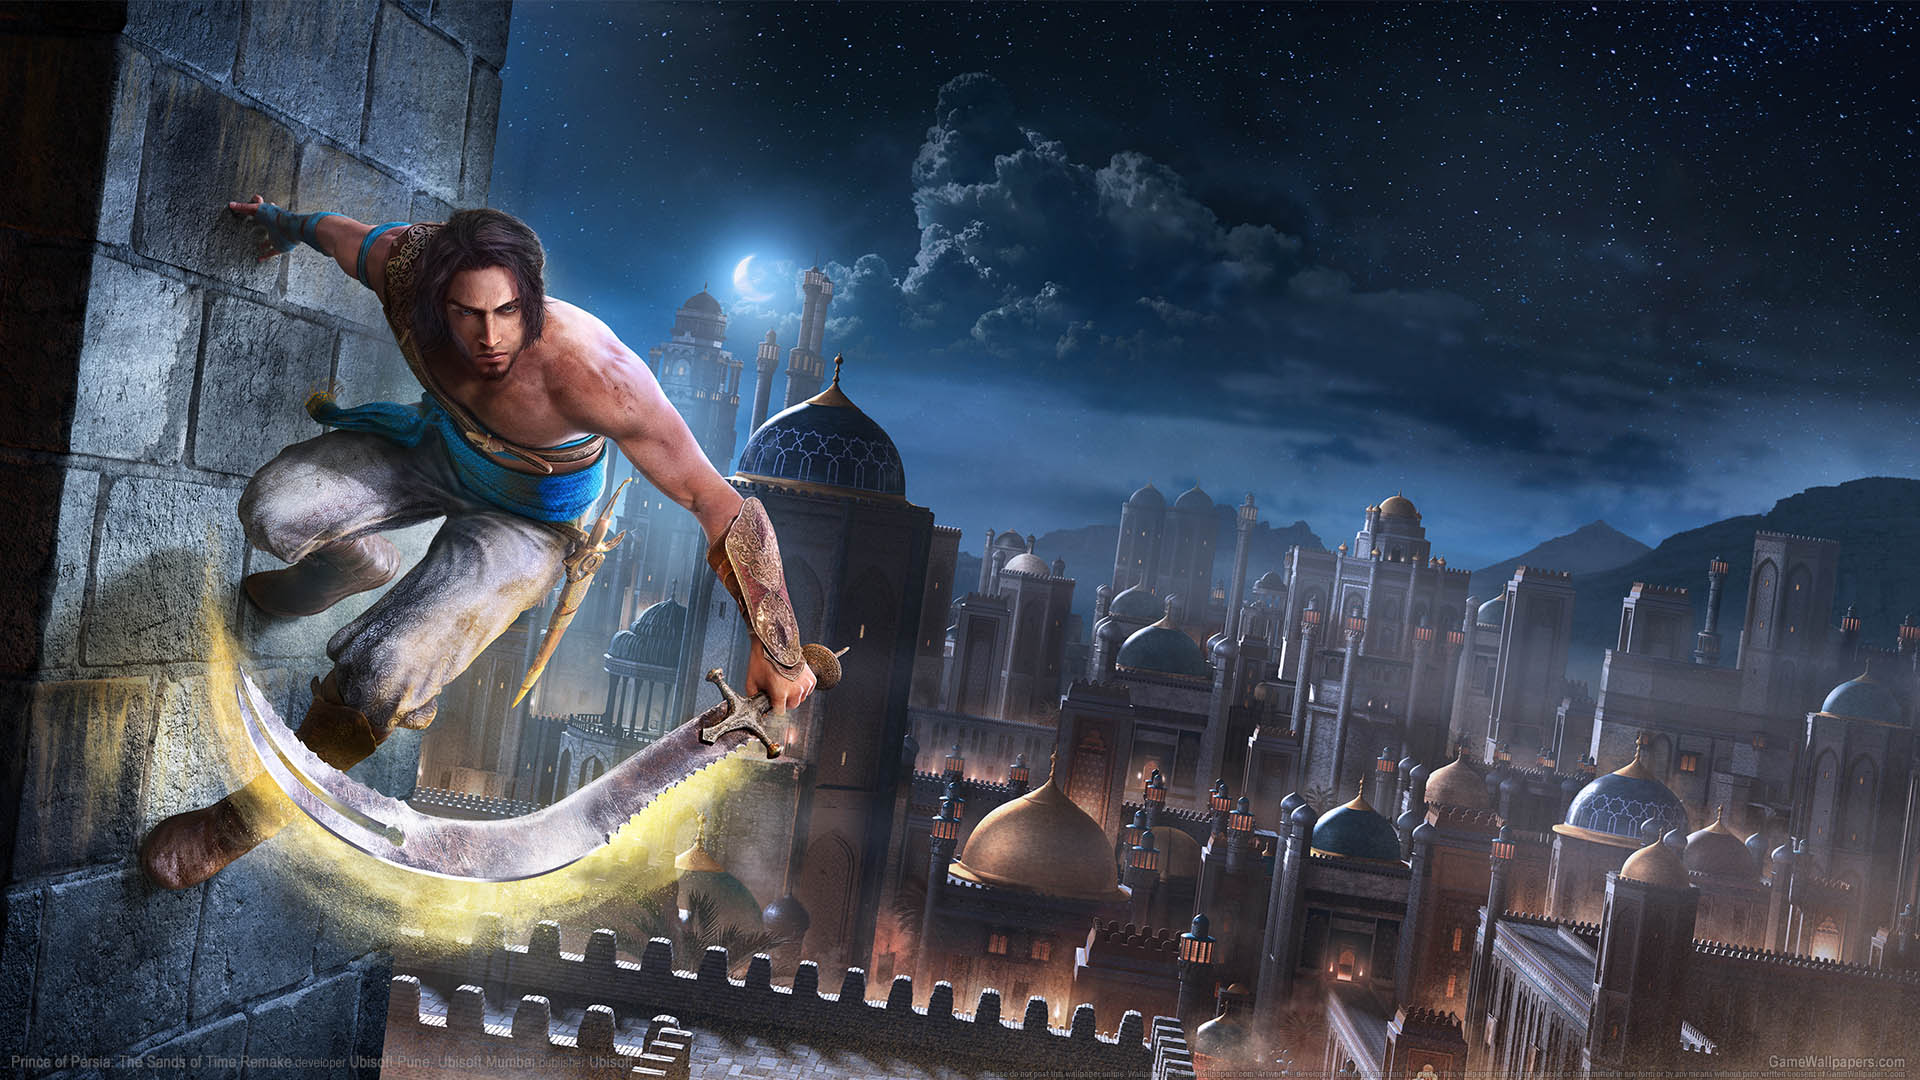 Prince of Persia: The Sands of Time Remake wallpaper 01 1920x1080